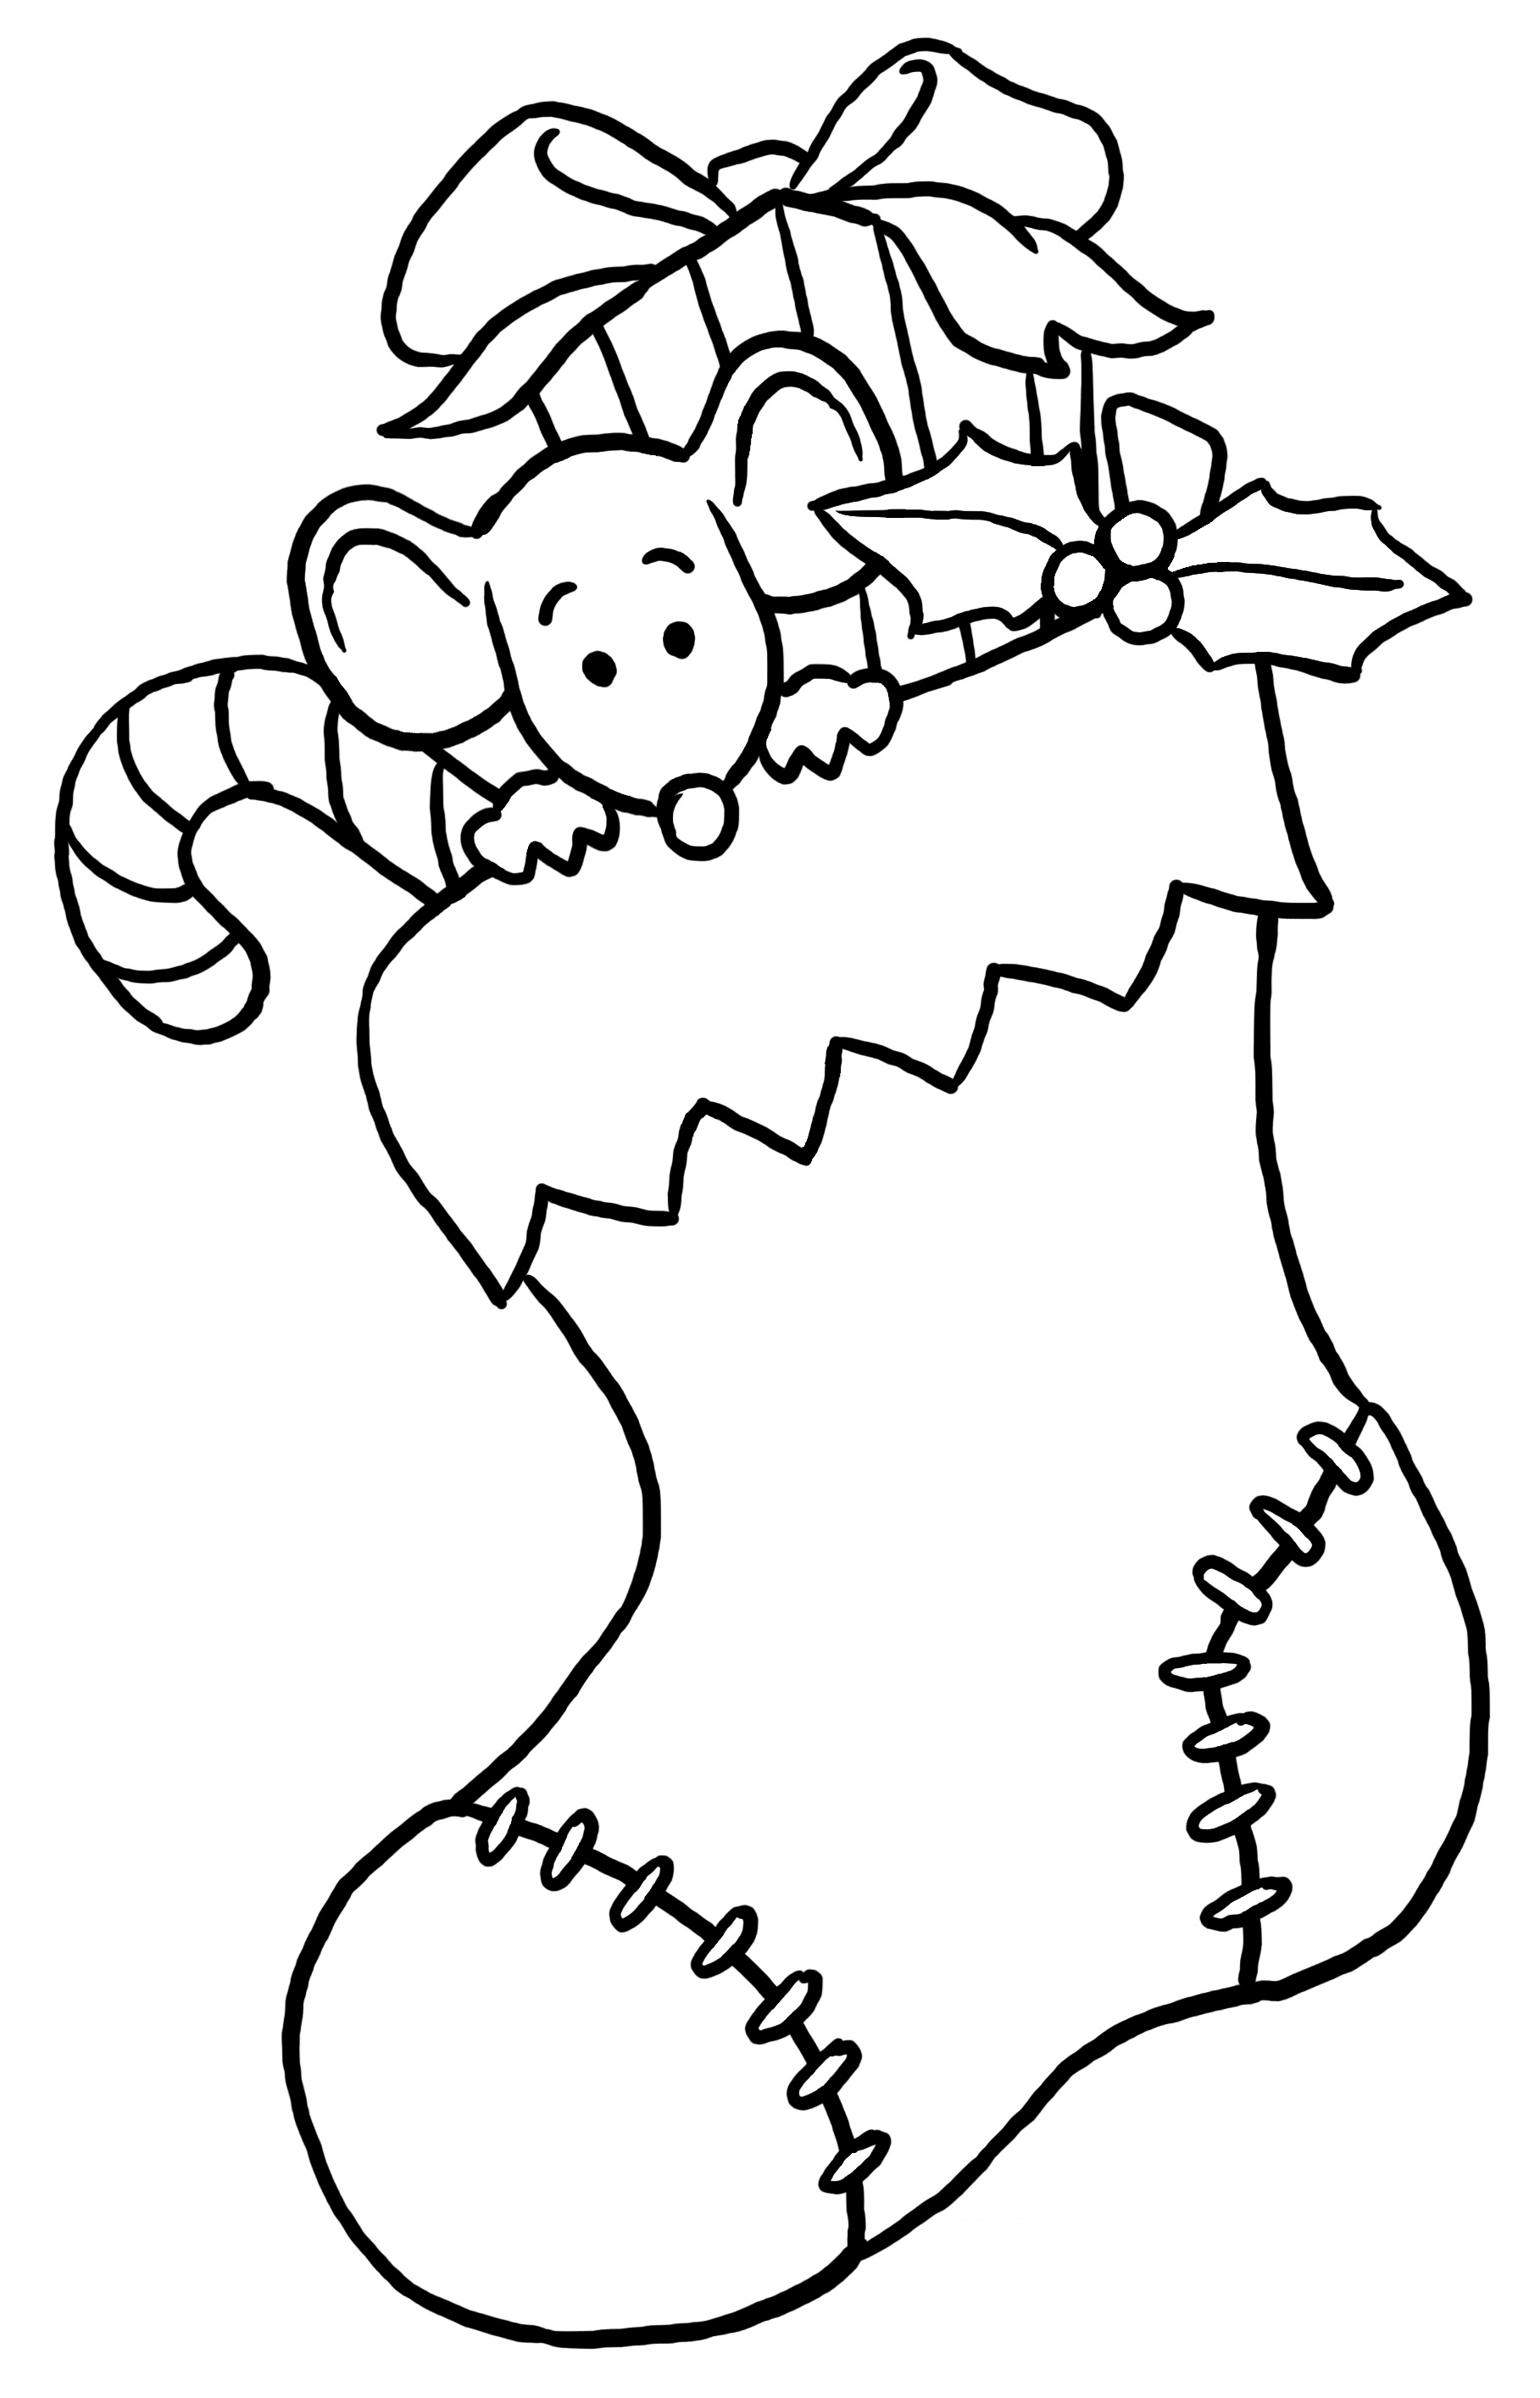 Christmas Coloring Pages (3) | Color Worksheets | Pinterest ...